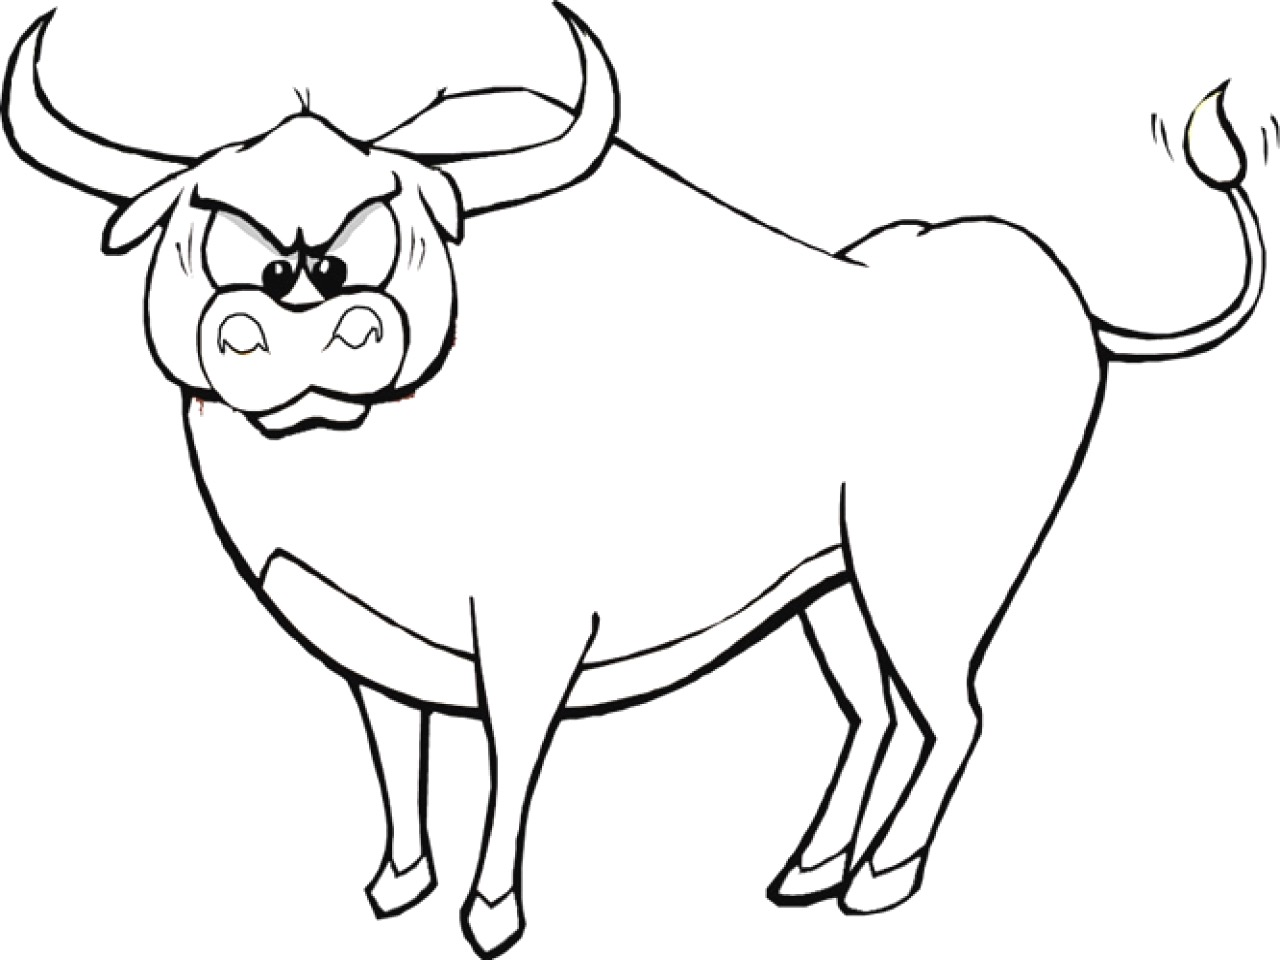 Ox Coloring Page At Getdrawings